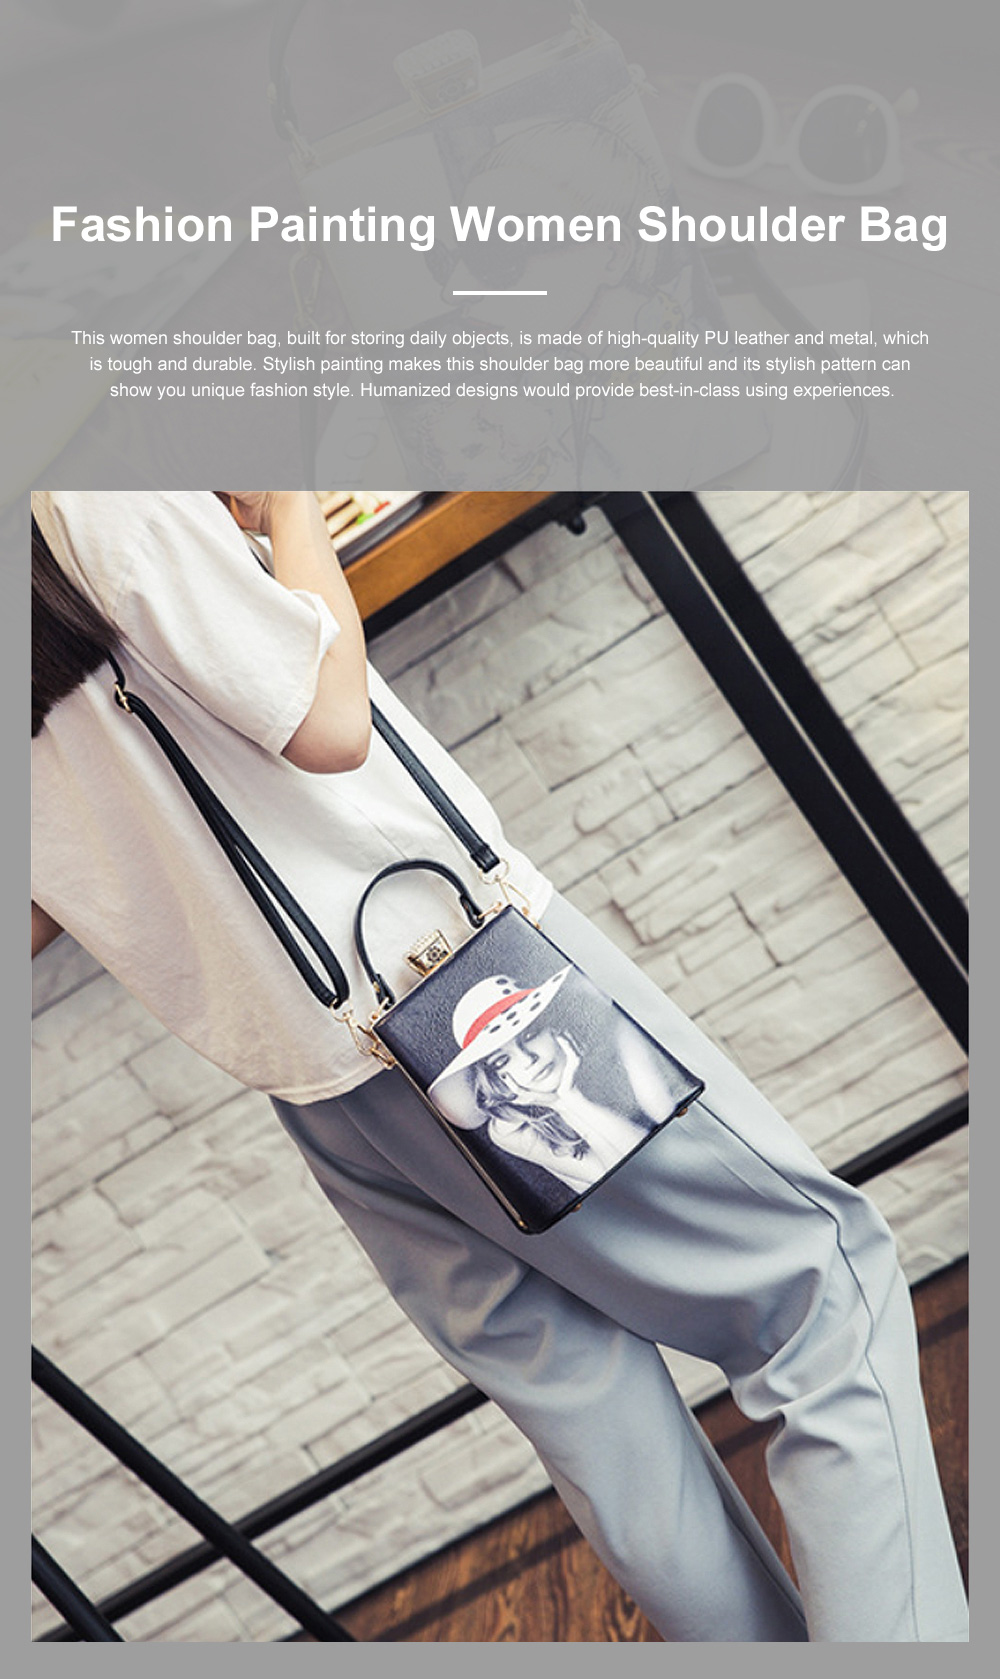 Fashion Painting Small Women Shoulder Bag with Comfortable Handle, Quality Smooth PU Leather Lady Bag 0